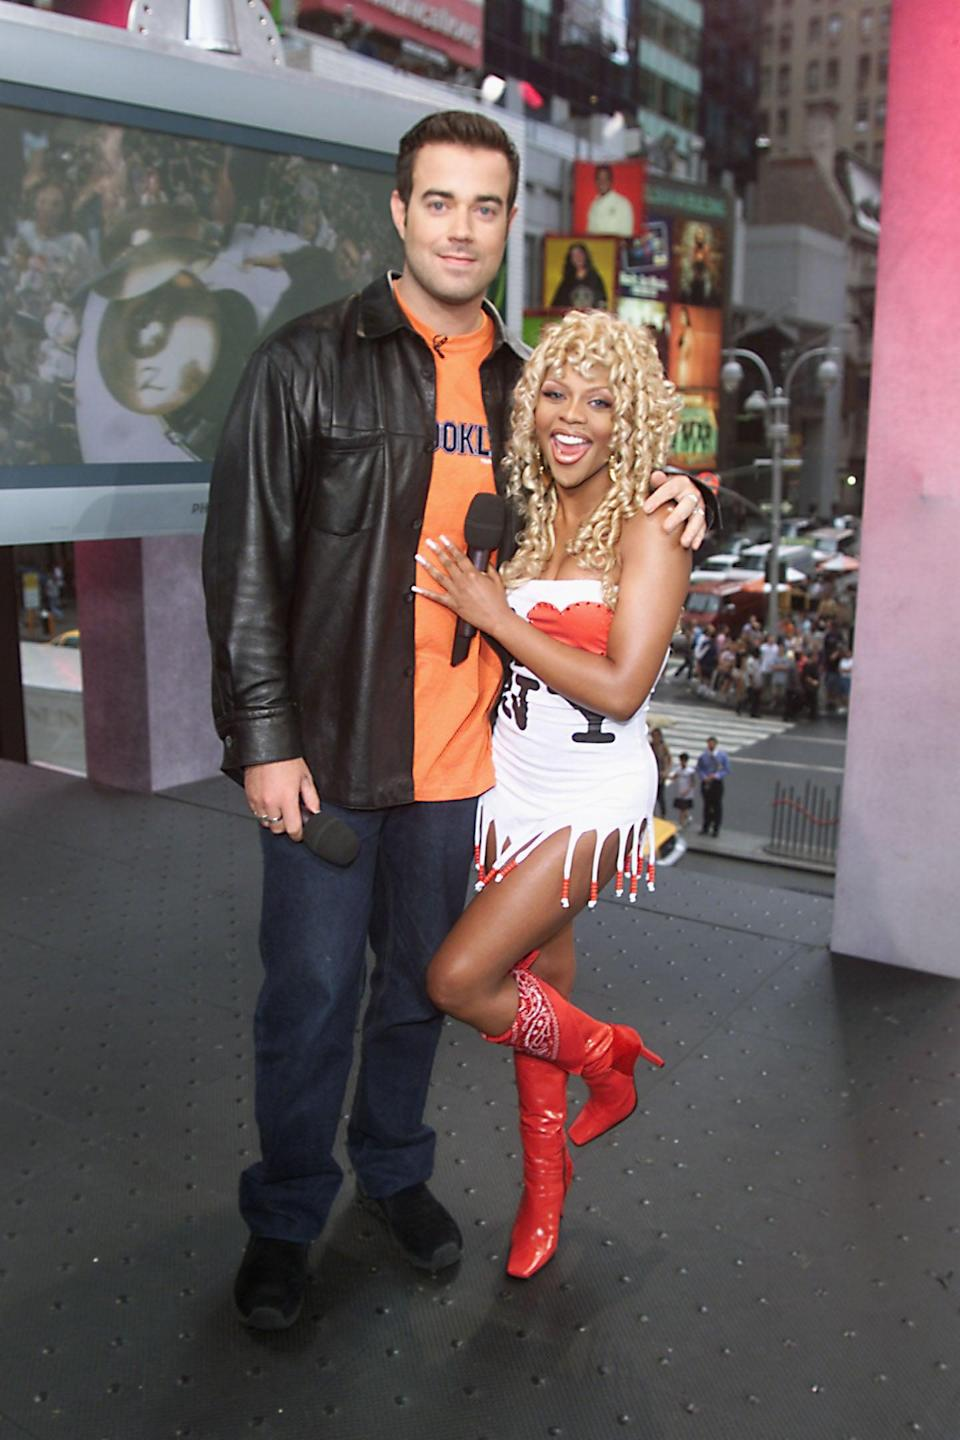 <p>Lil' Kim made an appearance on TRL in 2000 to promote her album <strong>The Notorious K.I.M.</strong></p>